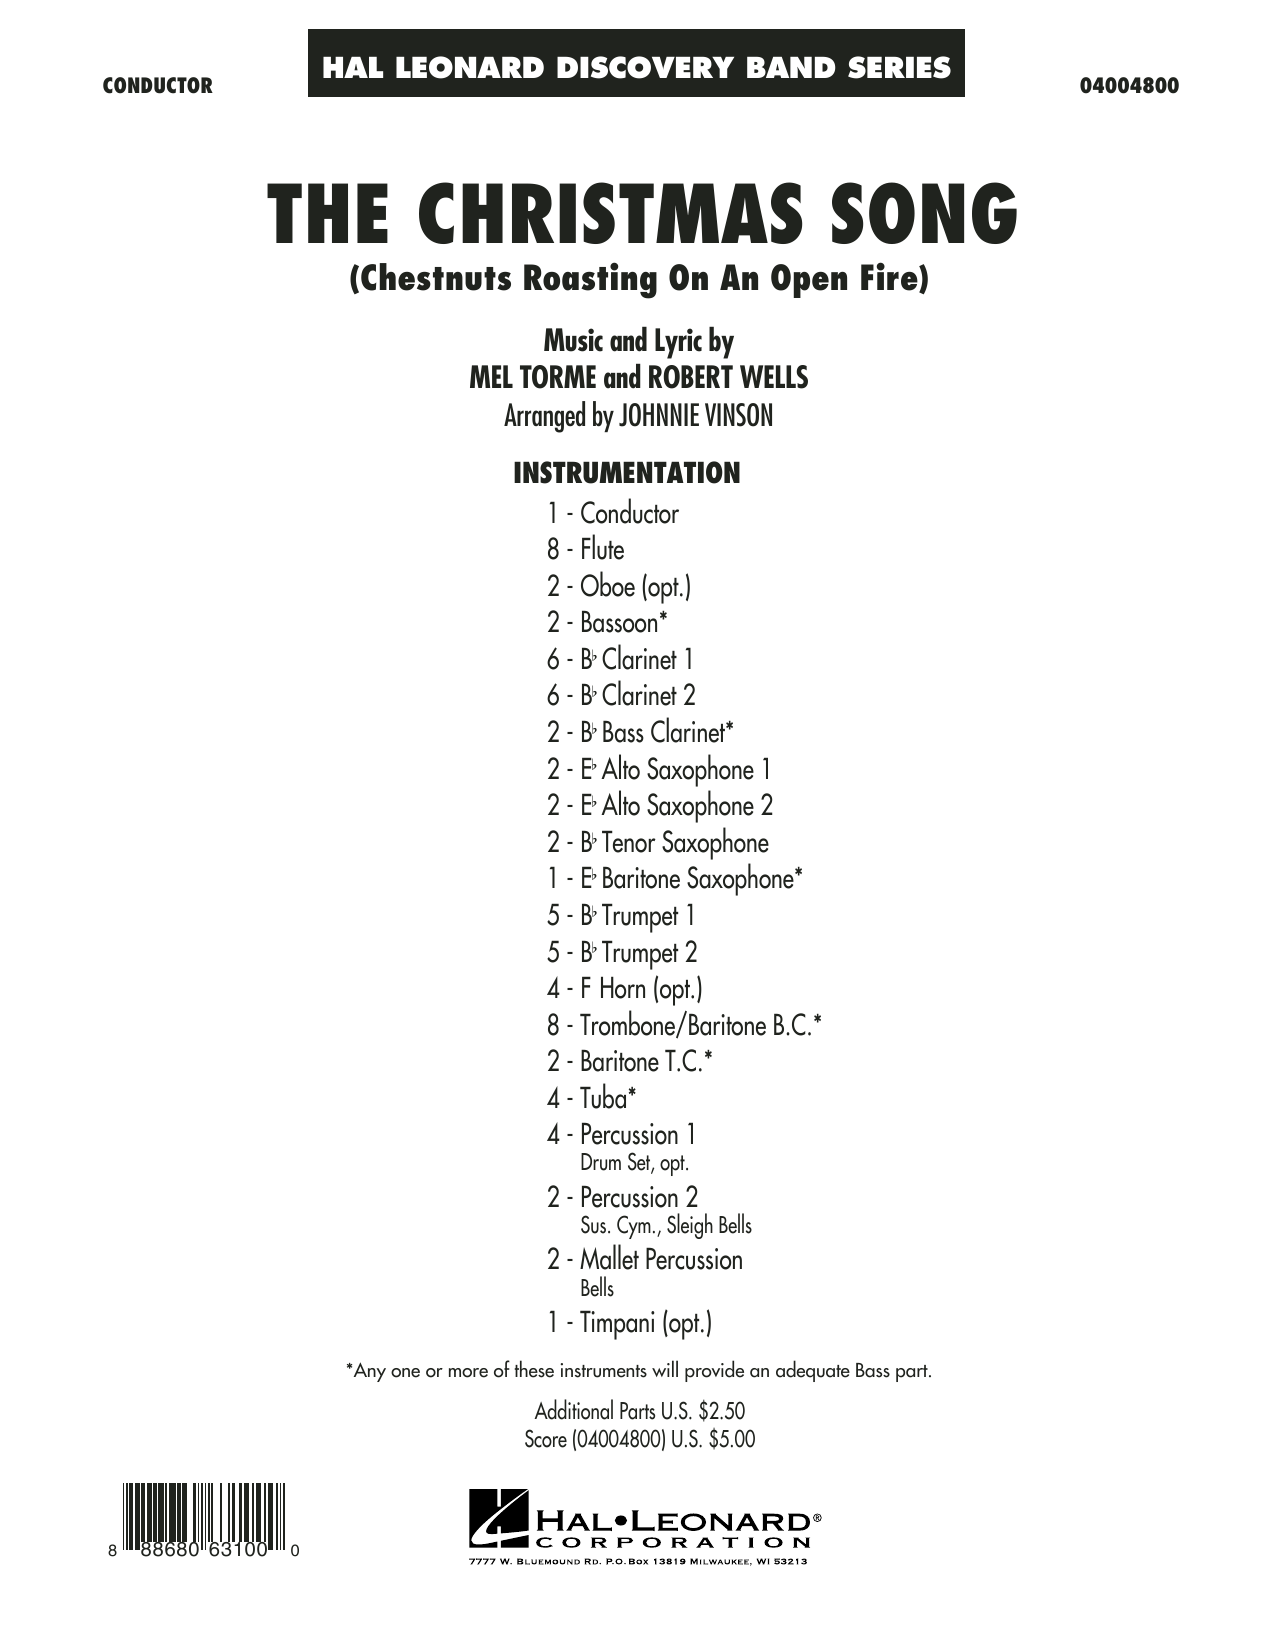 The Christmas Song (Chestnuts Roasting on an Open Fire) - Conductor Score (Full Score) (Concert Band)